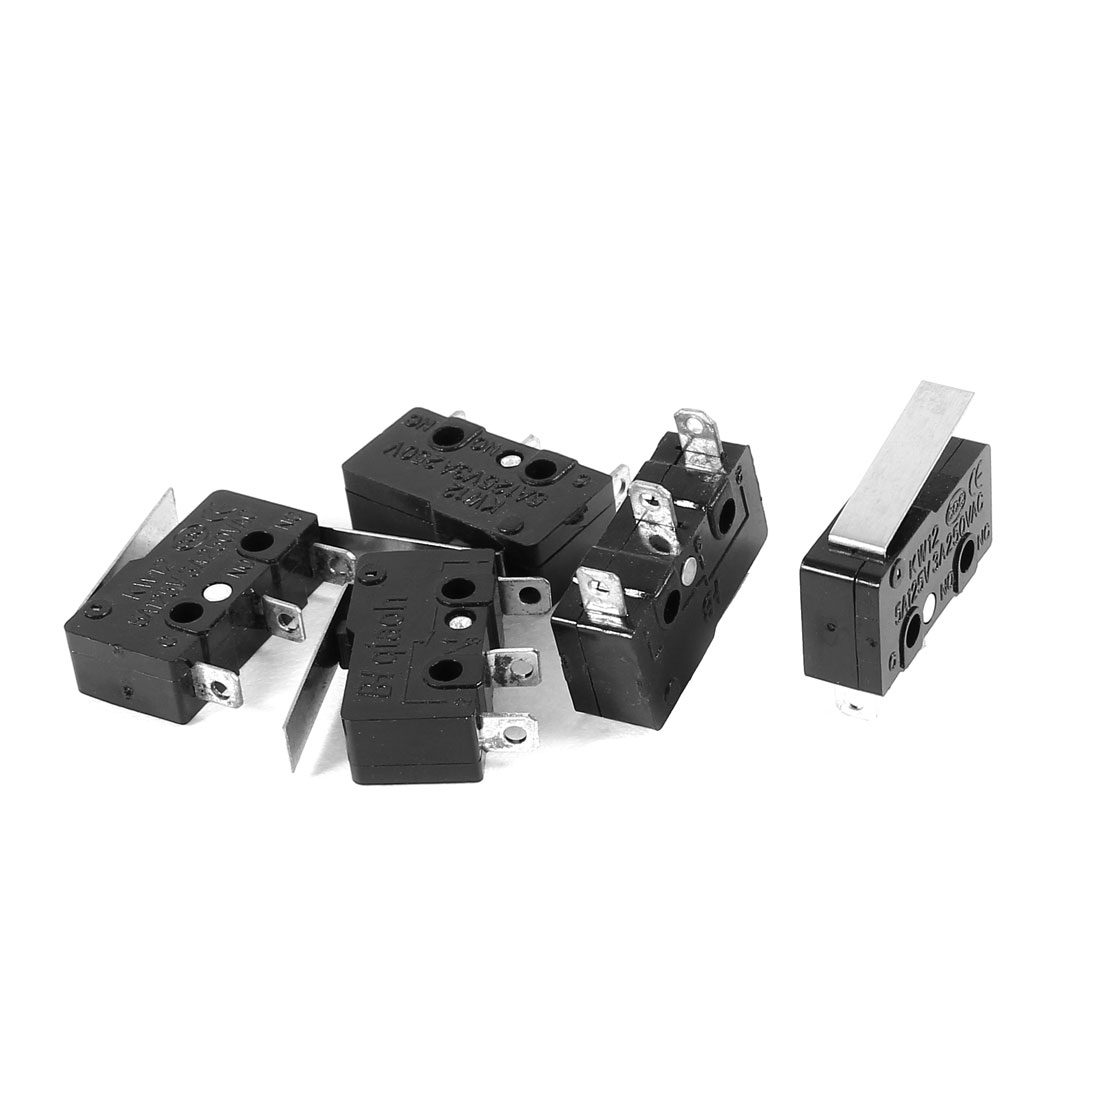 5 Pcs AC 250V/125V 3A/5A SPDT 1NO 1NC Momentary Hinge Lever Micro Switch